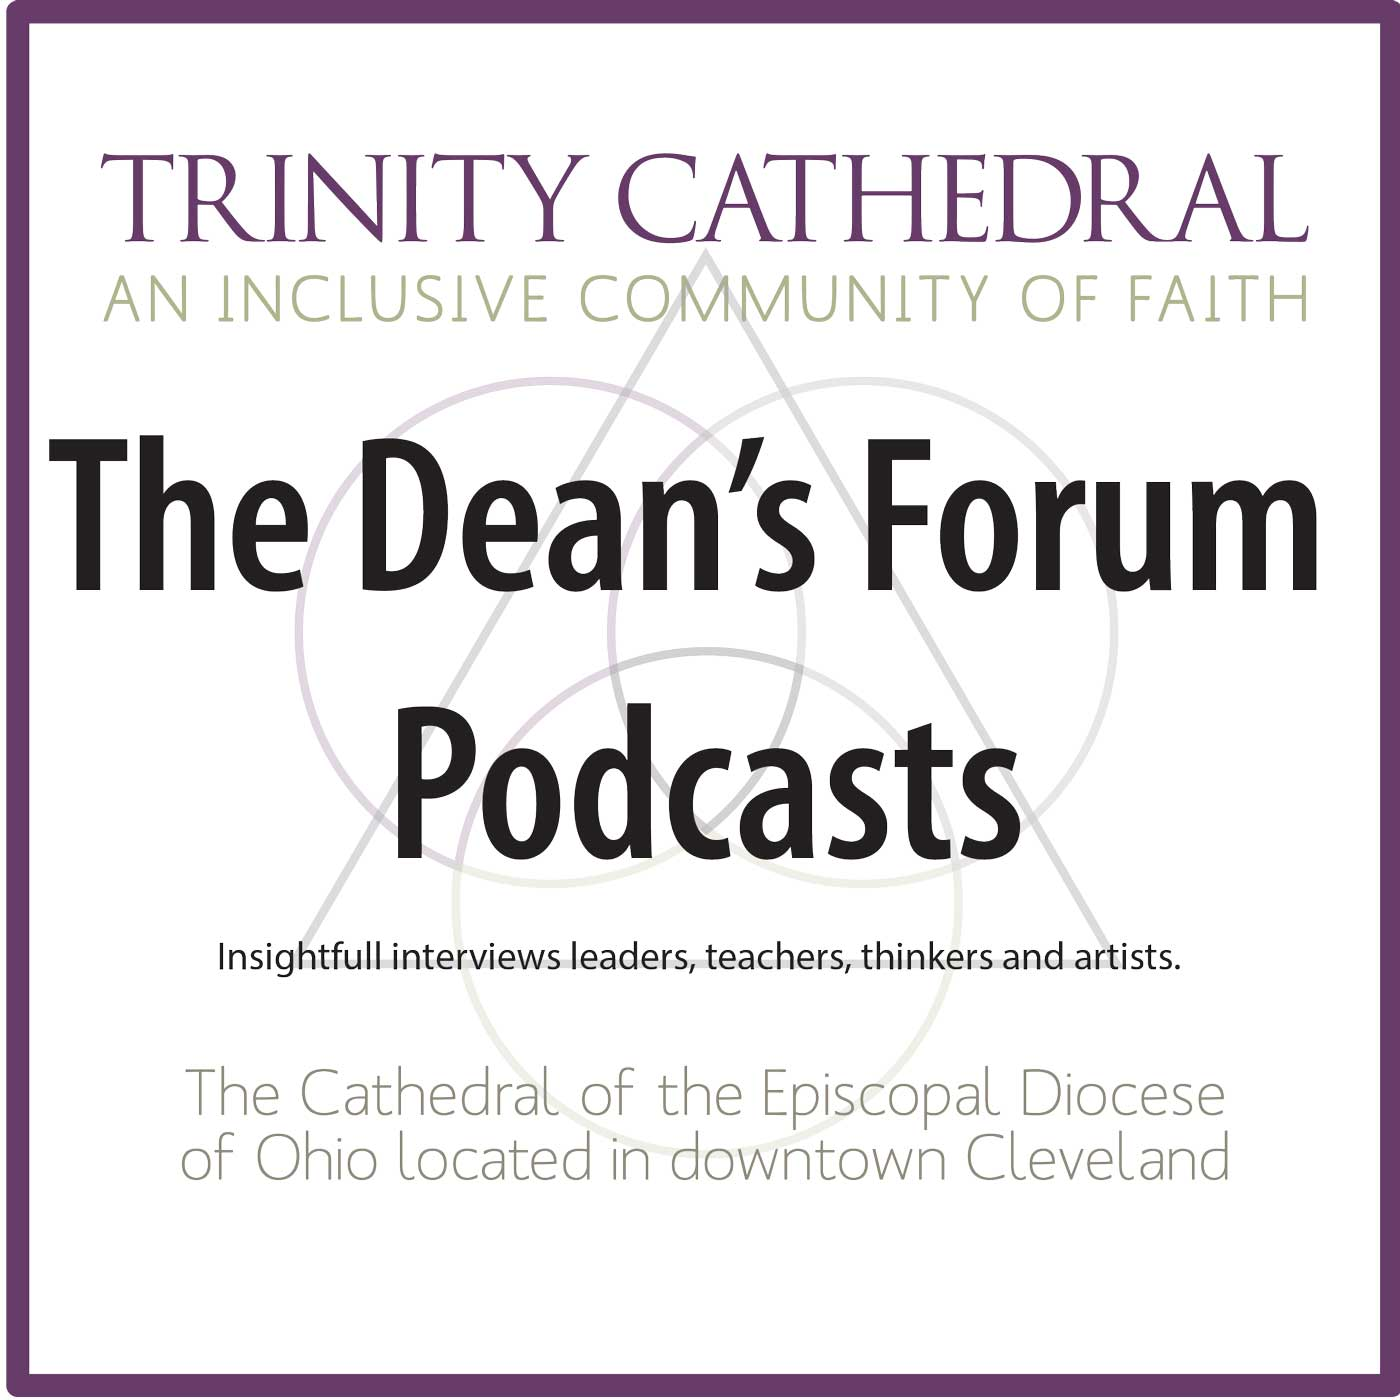 Trinity Episcopal Cathedral: The Dean's Forum Podcasts